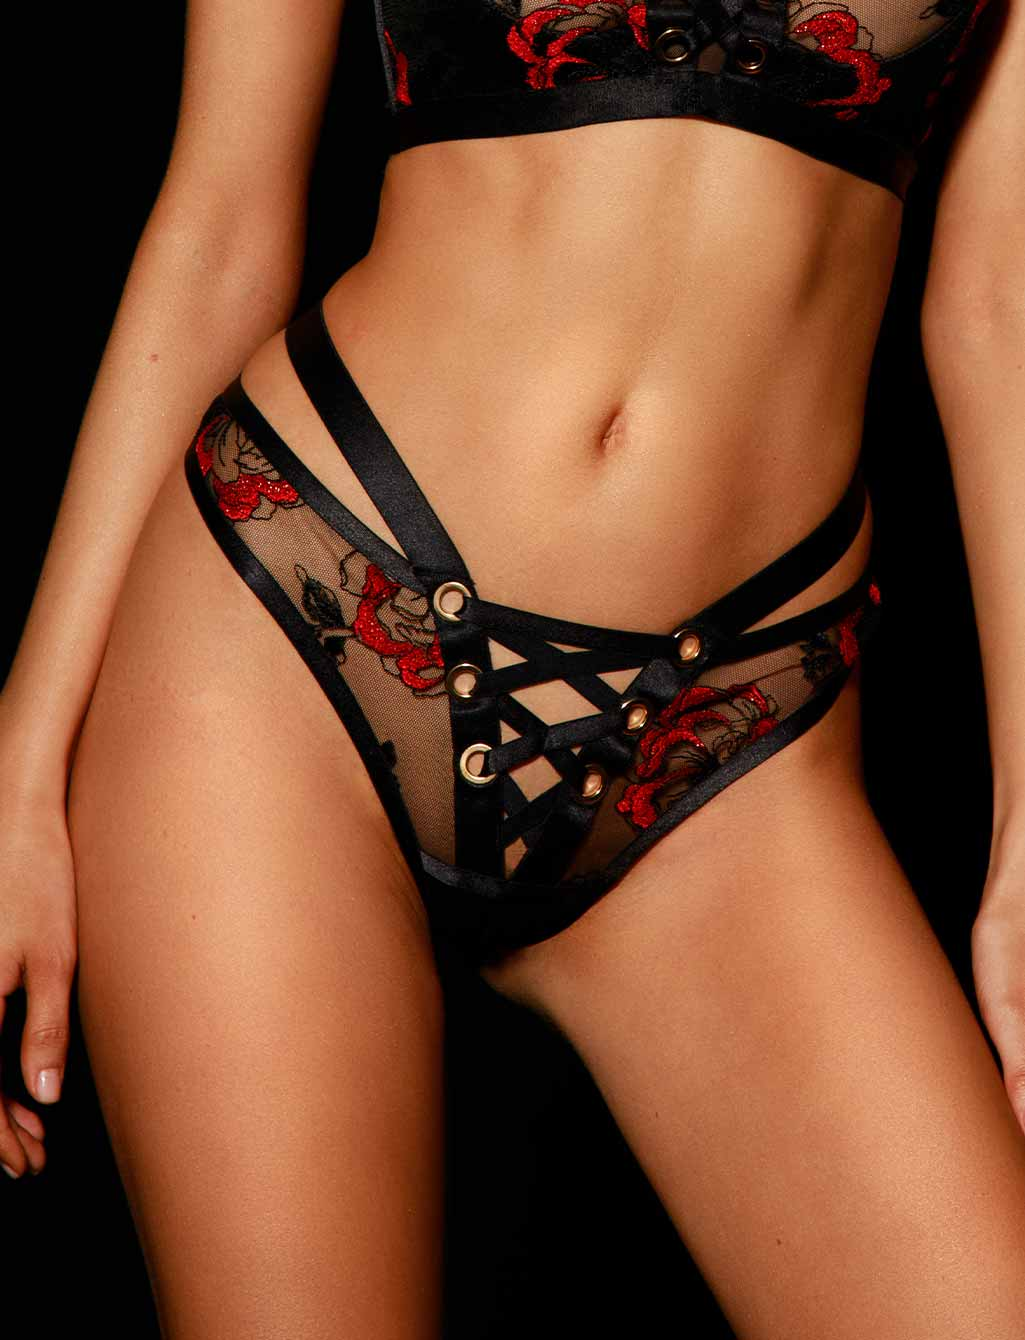 Freyah Lace Black & Red Thong G string